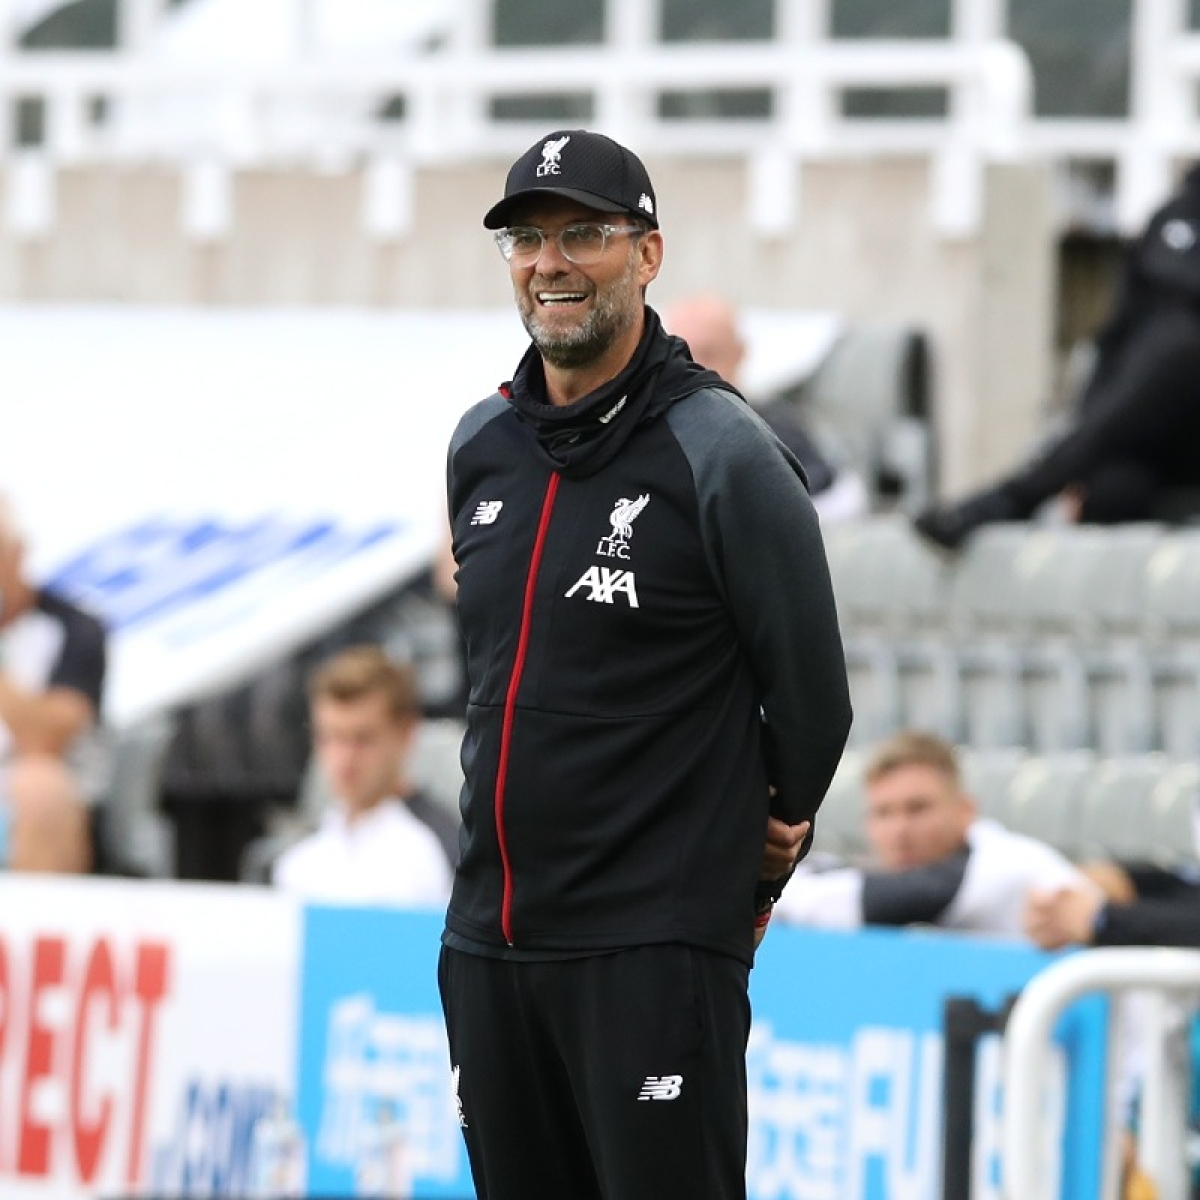 Liverpool signs off Premier League-winning season with 3-1 win over Newcastle United